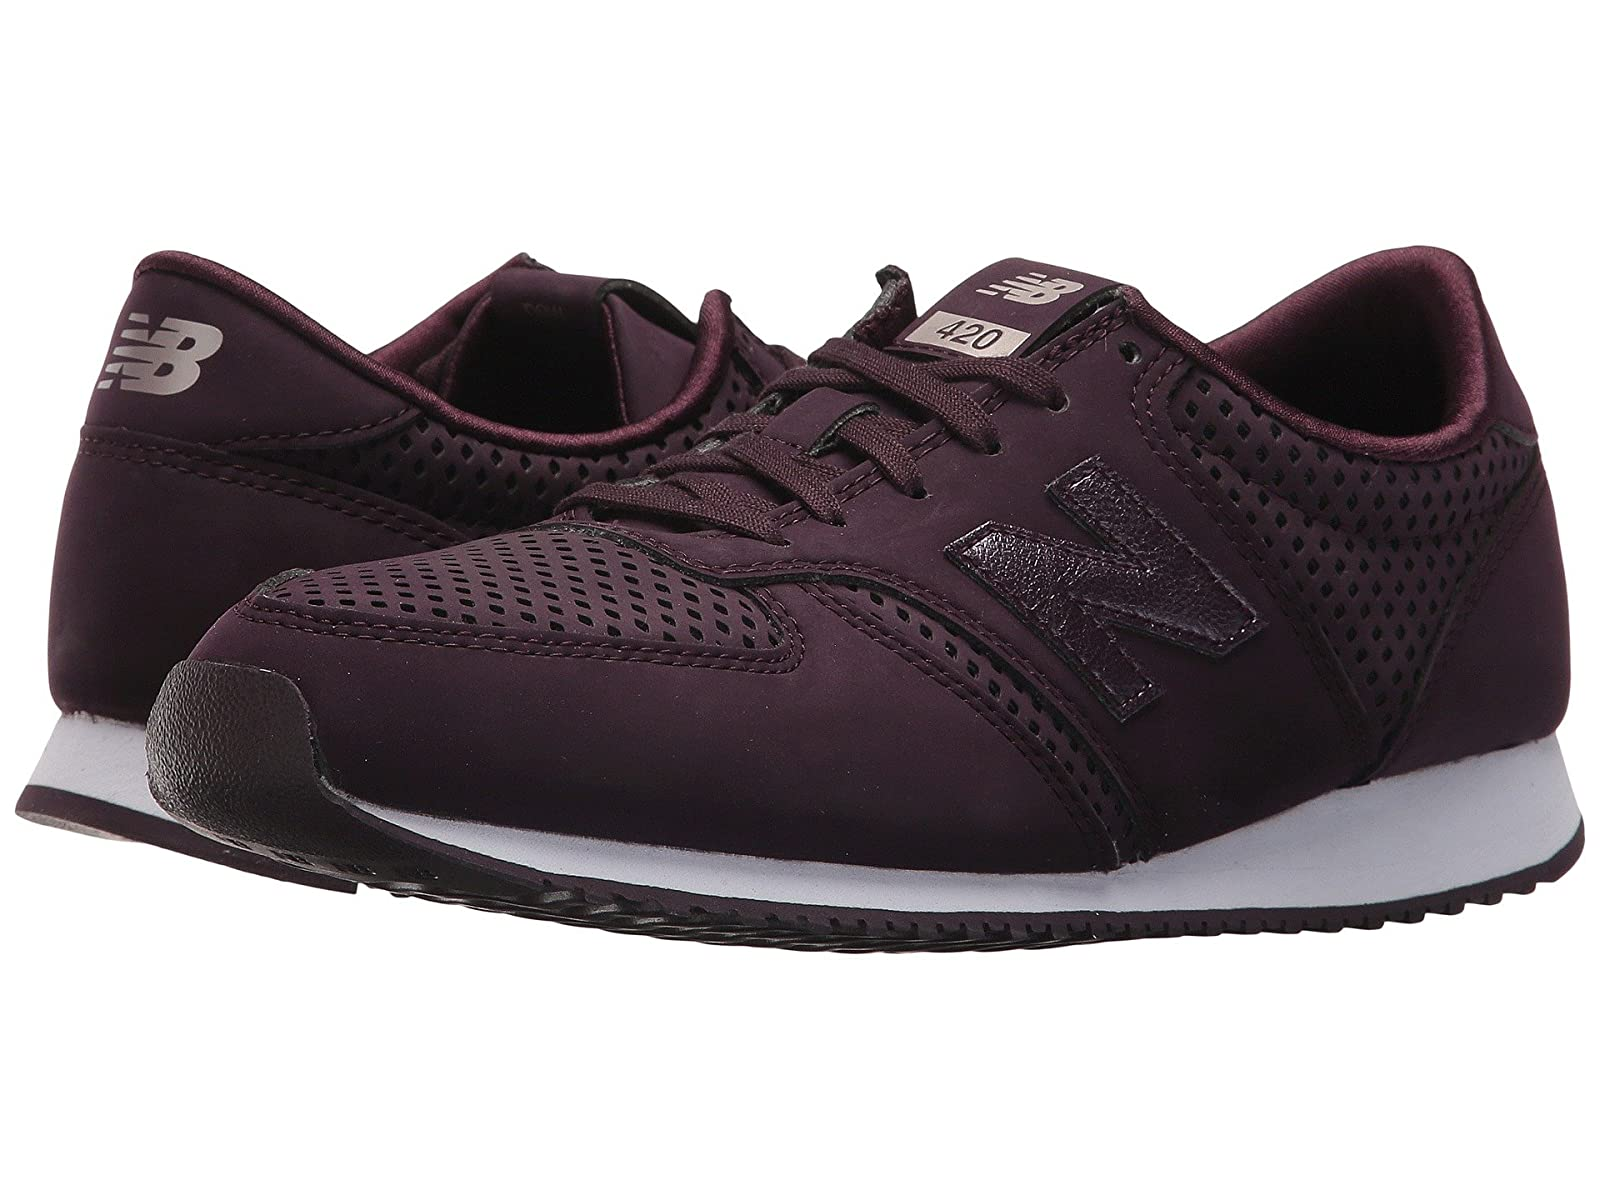 New Balance Classics WL420v1Cheap and distinctive eye-catching shoes